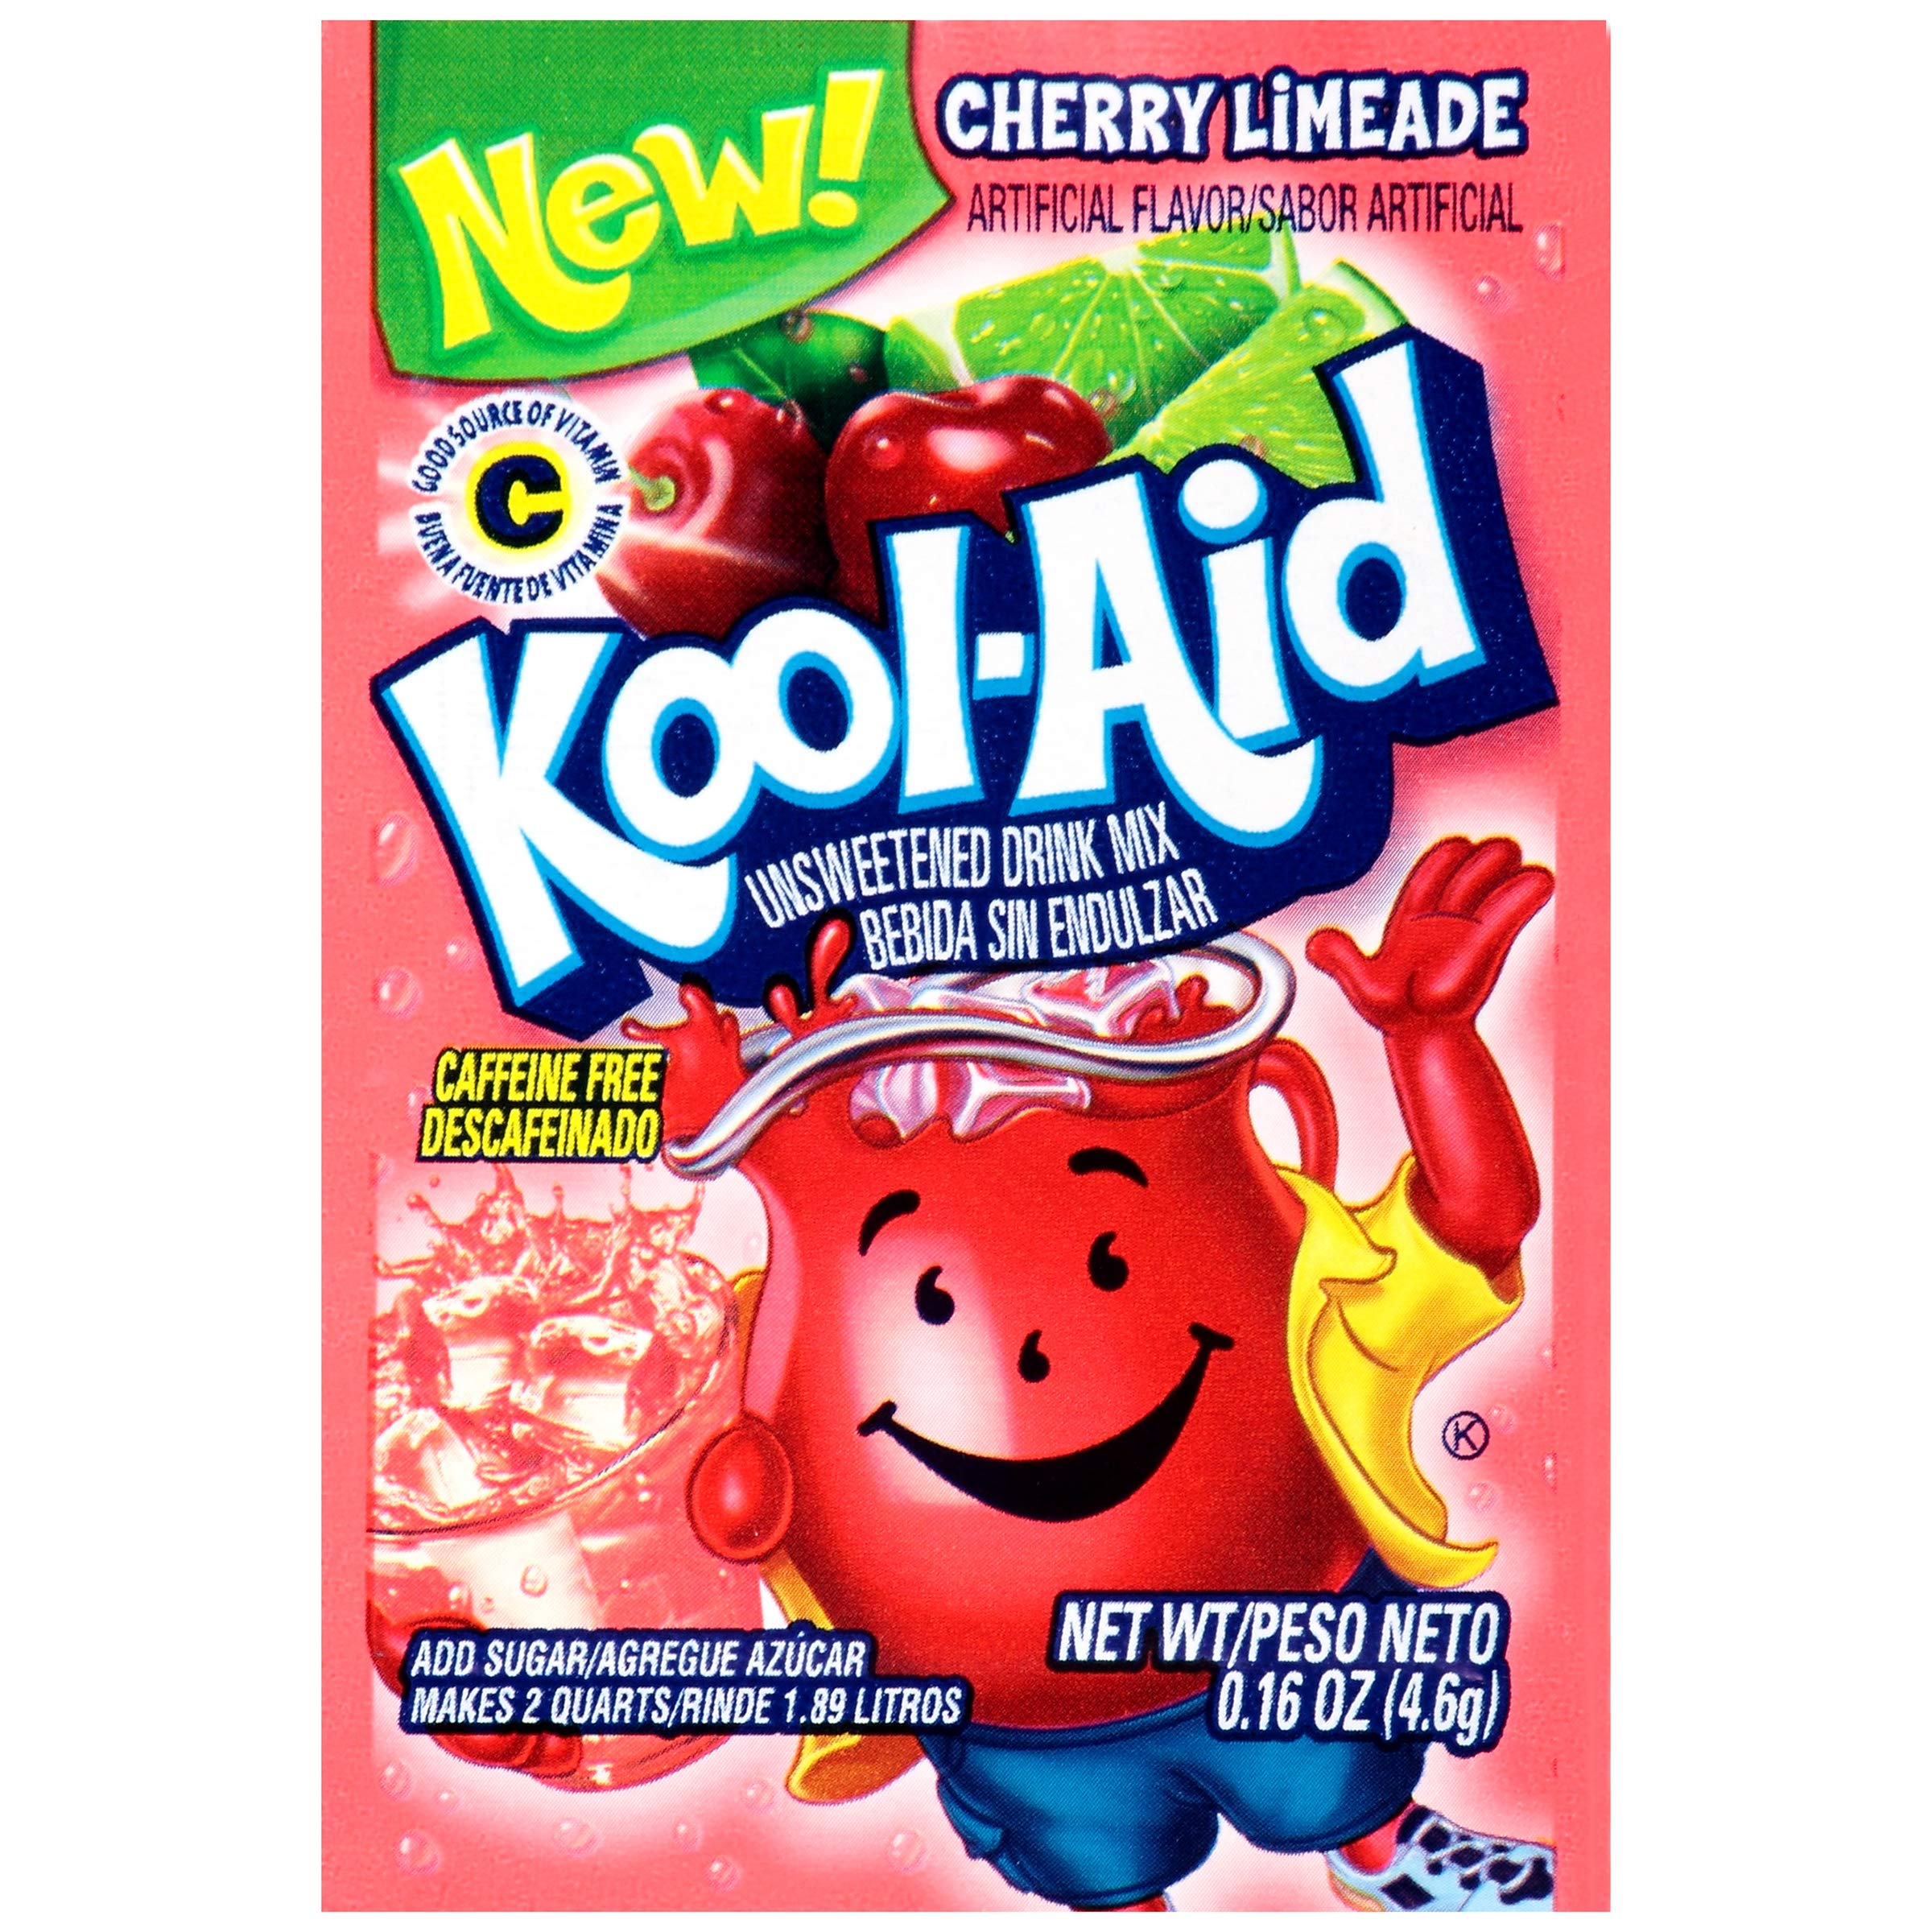 Kool-Aid Cherry Limeade Flavored Unsweetened Caffeine Free Powdered Drink Mix (192 Packets)